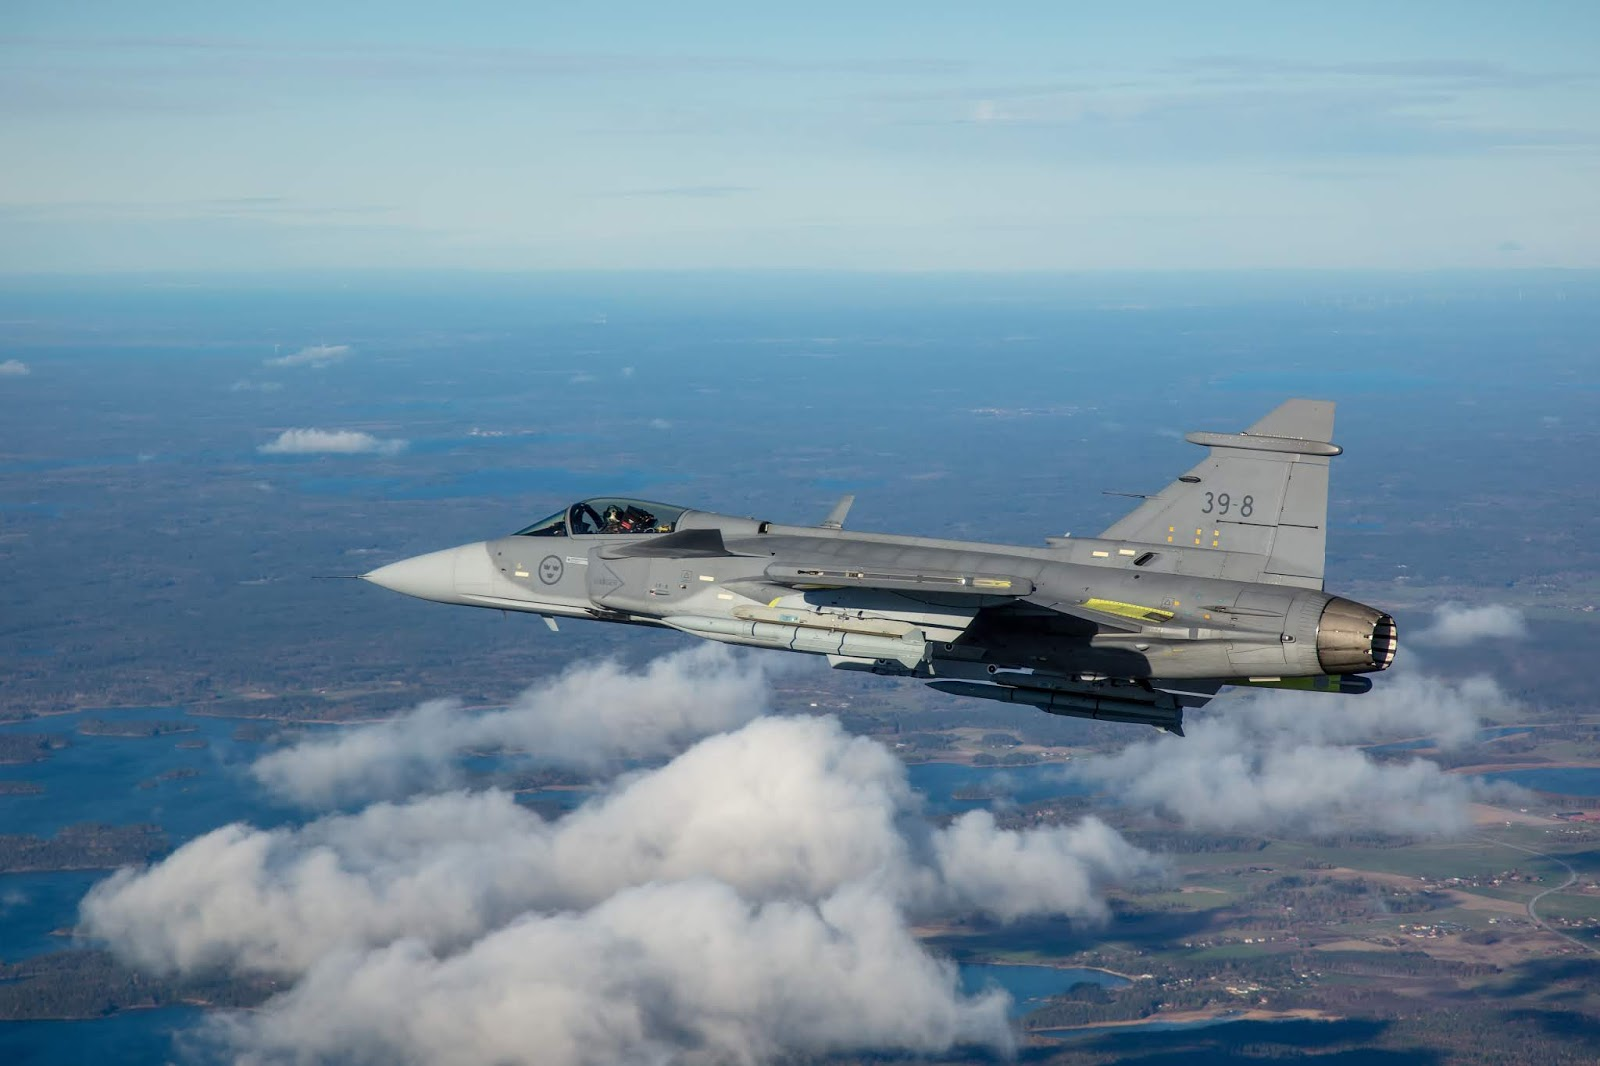 Air101: Finland considers Gripen aircraft from Saab